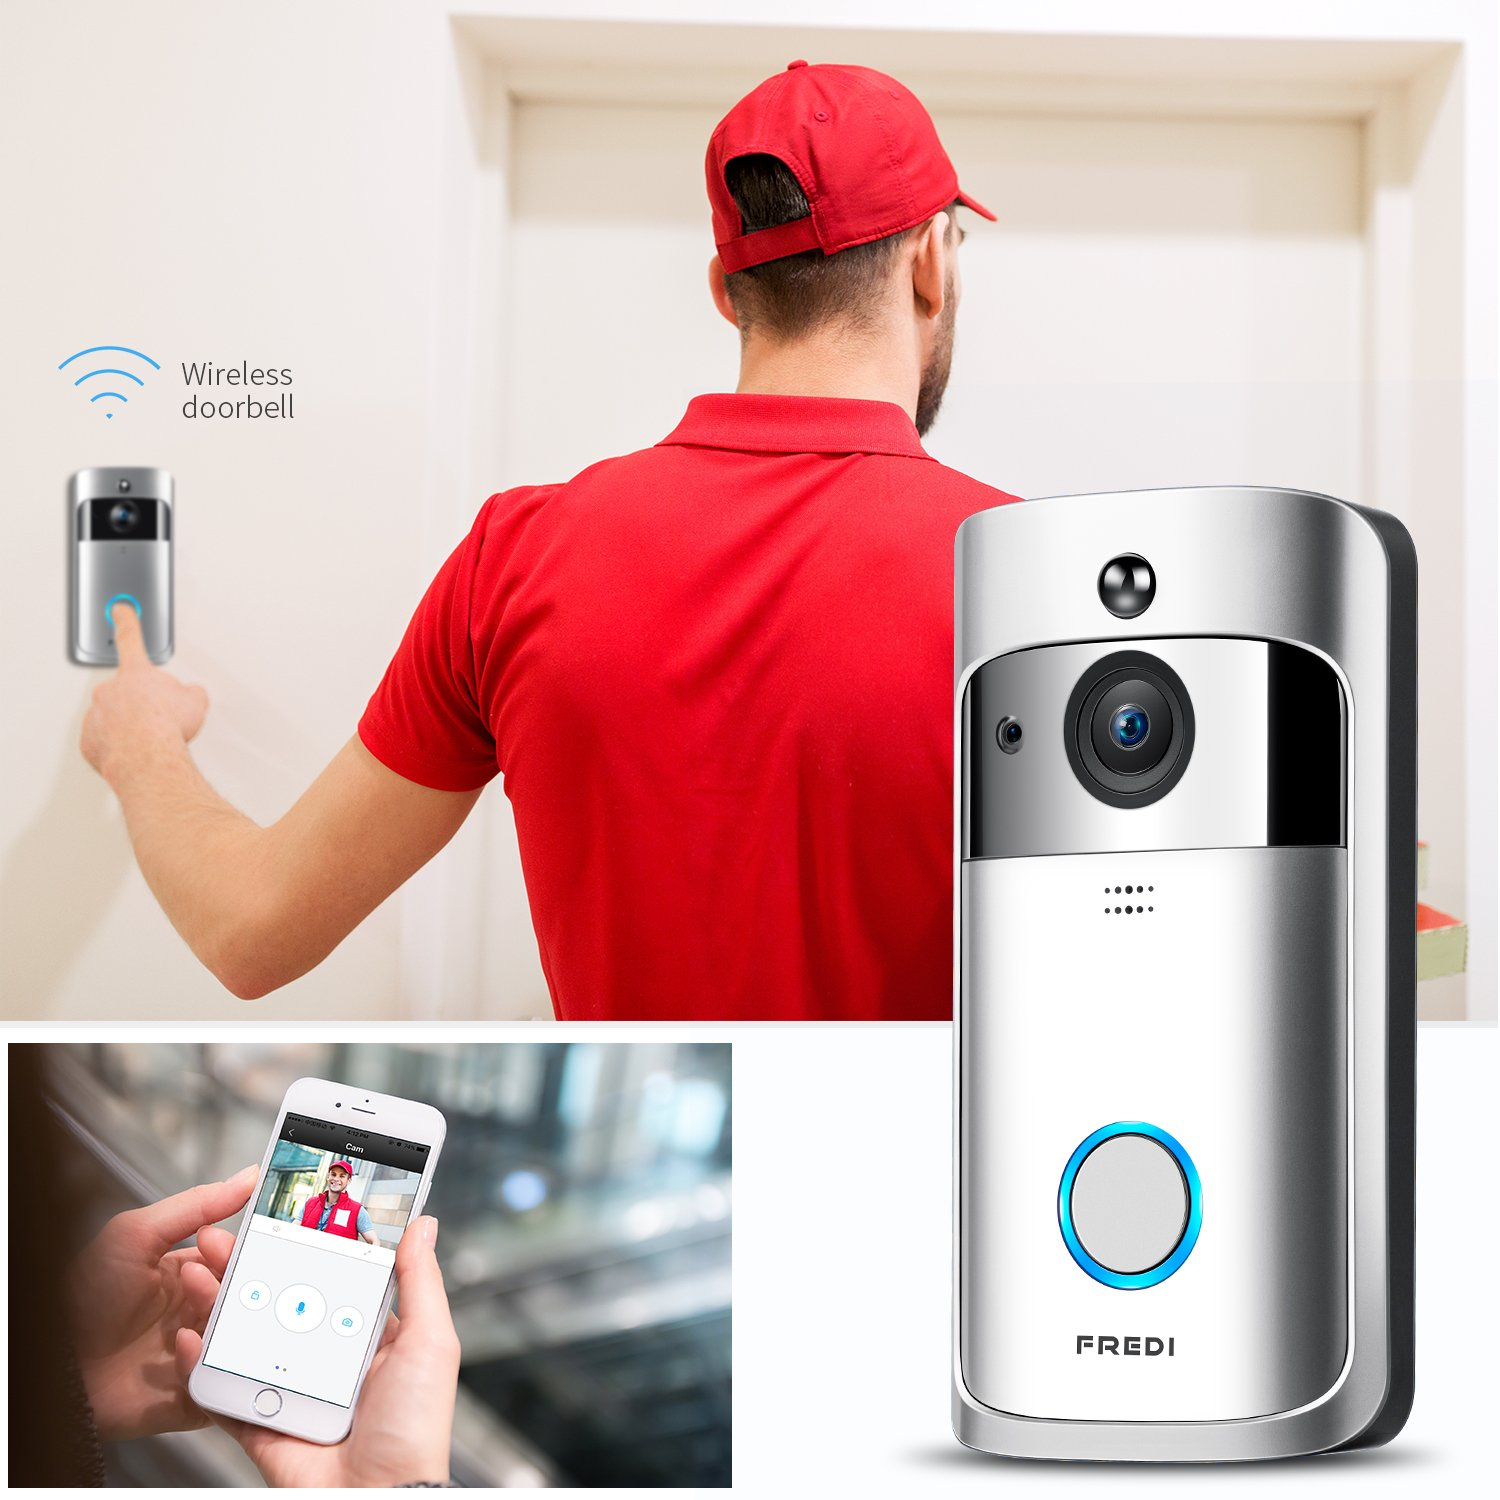 WIFI Video Doorbell, FREDI Smart Doorbell 720P HD Security Camera Real-Time Two-Way Talk and Video, Night Vision, PIR Motion Detection and App Control for IOS and Android by FREDI (Image #3)